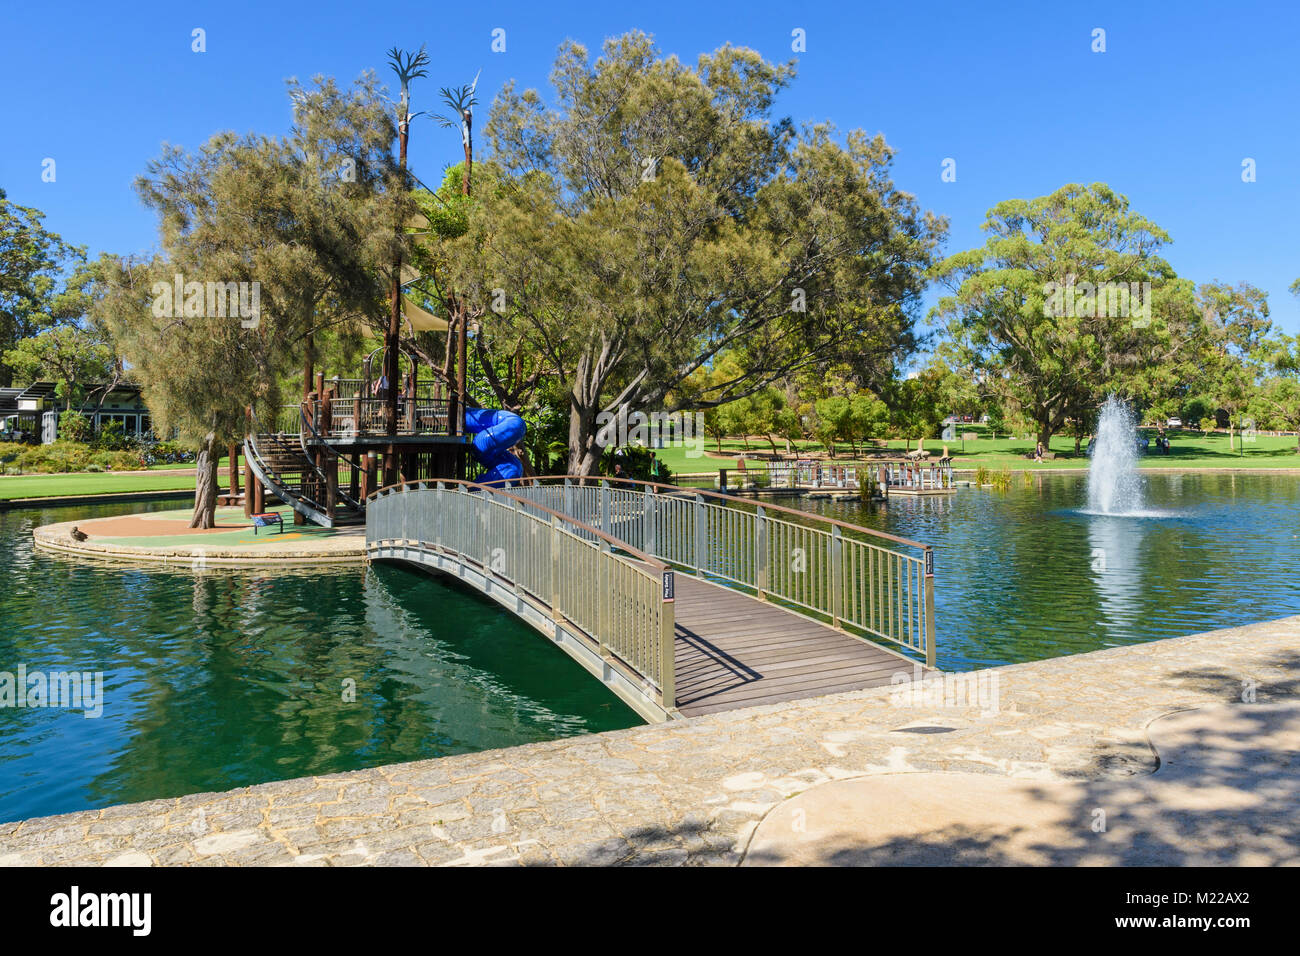 Bridge over to Lycopod Island in the pond at May Drive Parkland playground, Kings Park, Perth, Western Australia - Stock Image